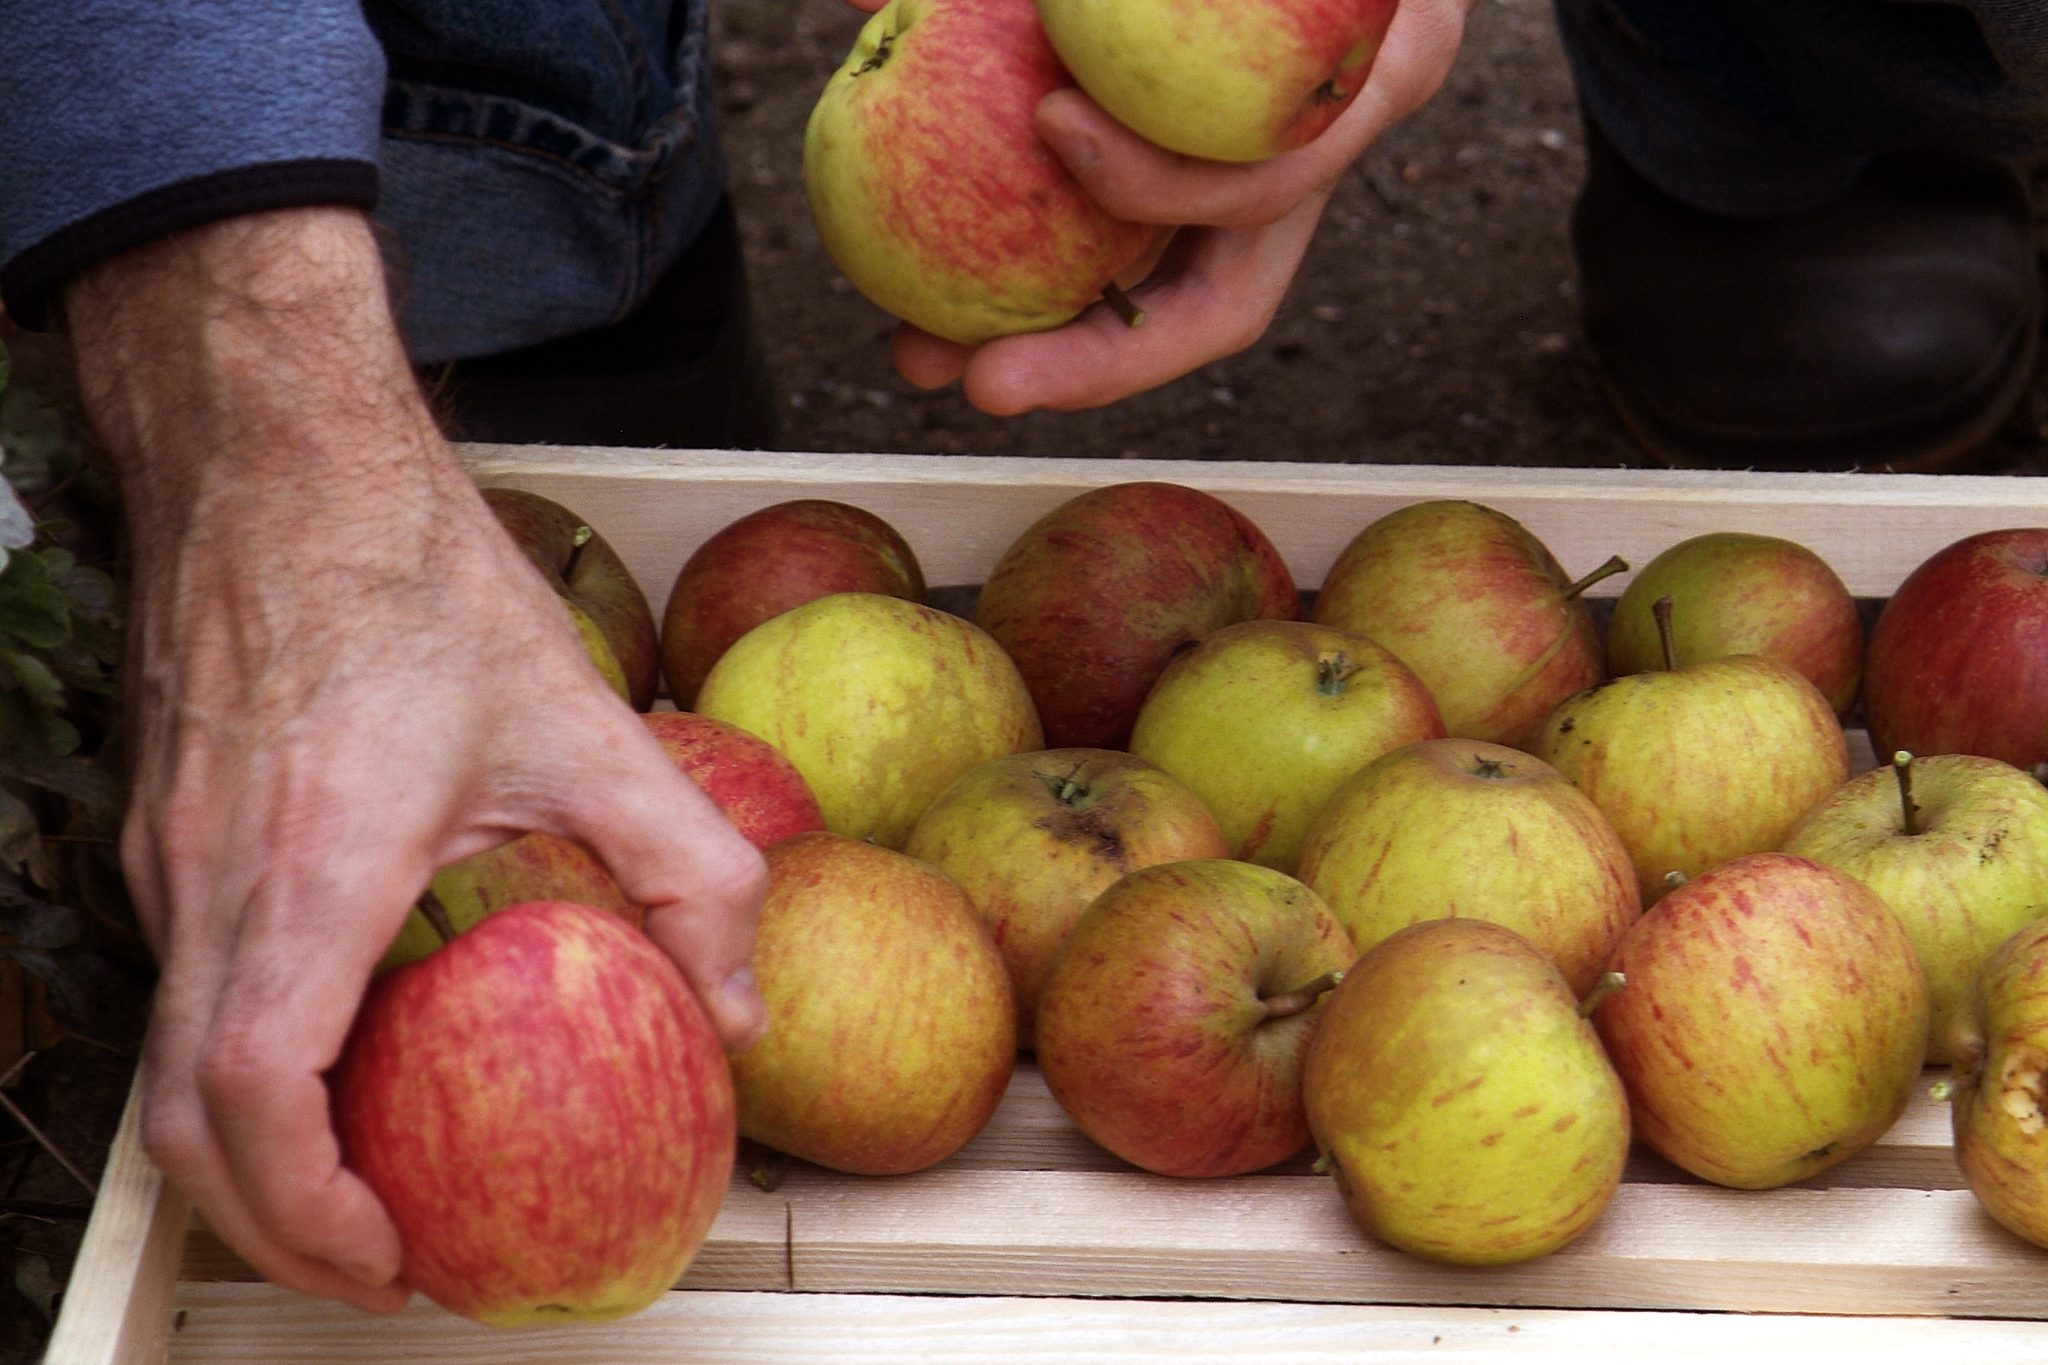 storing-apples-in-an-apple-rack-3